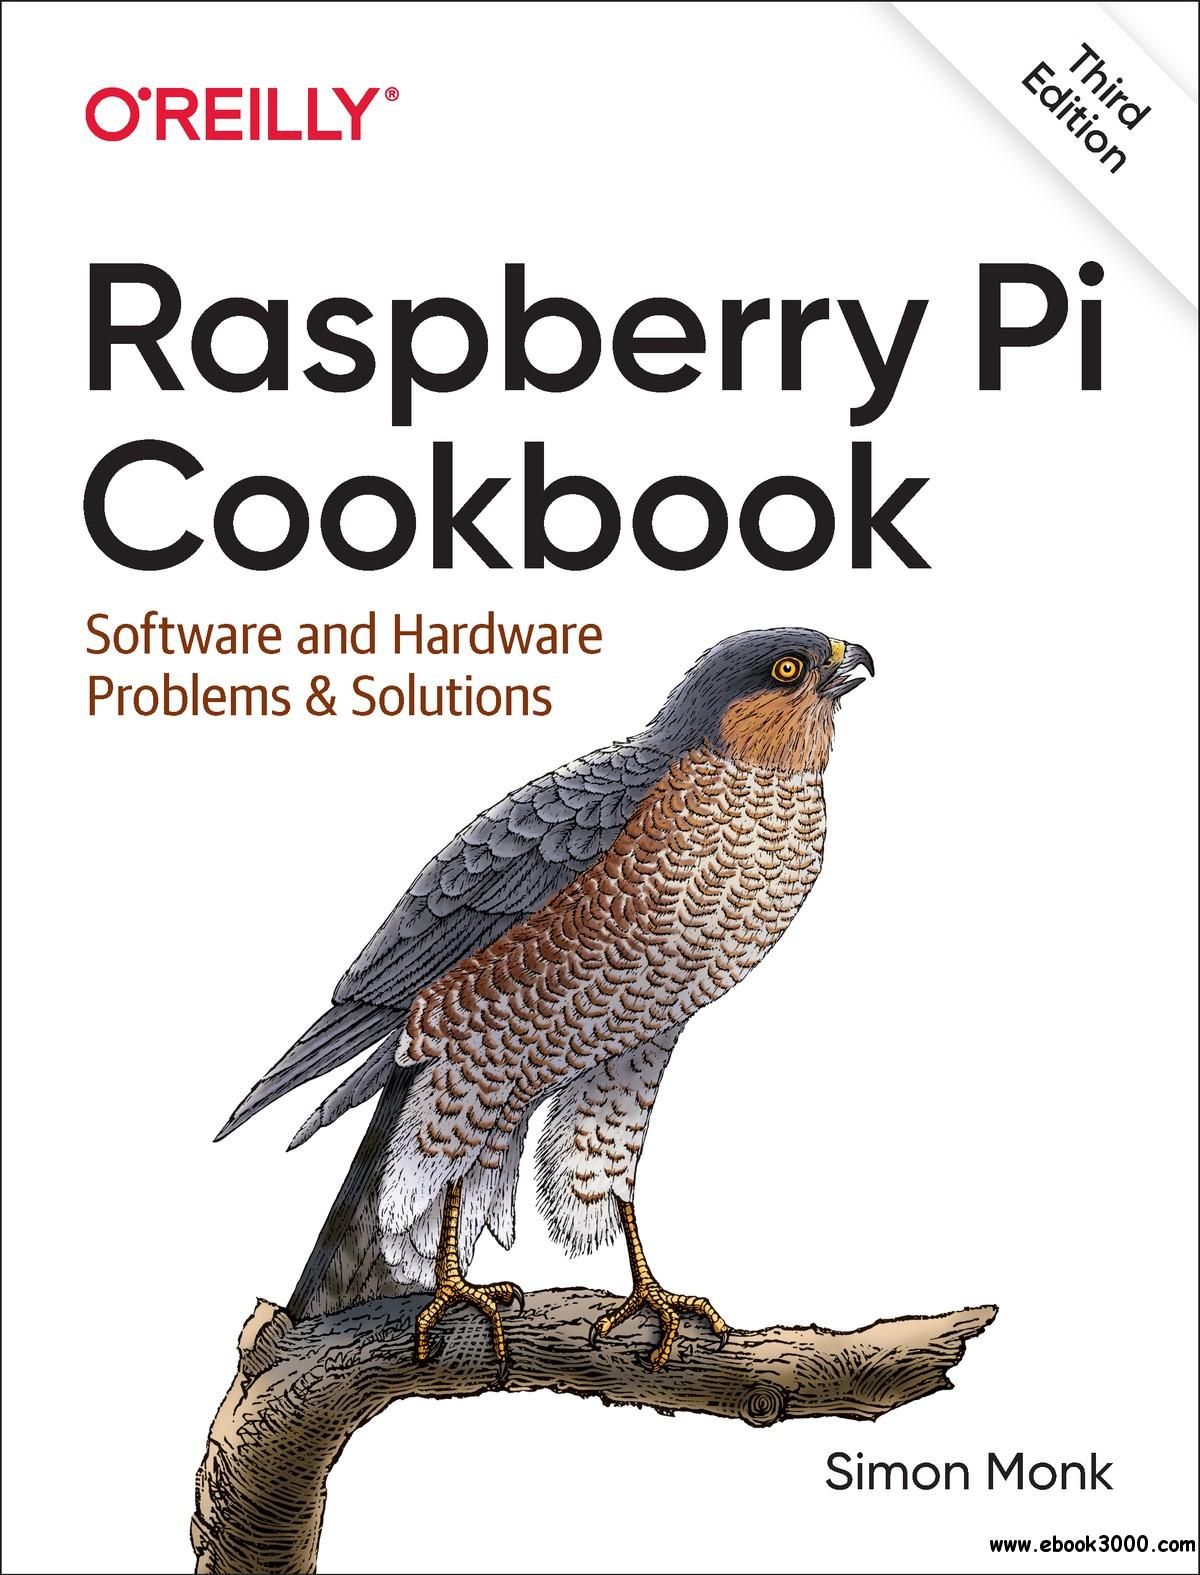 Raspberry Pi Cookbook: Software and Hardware Problems and Solutions, 3rd Edition